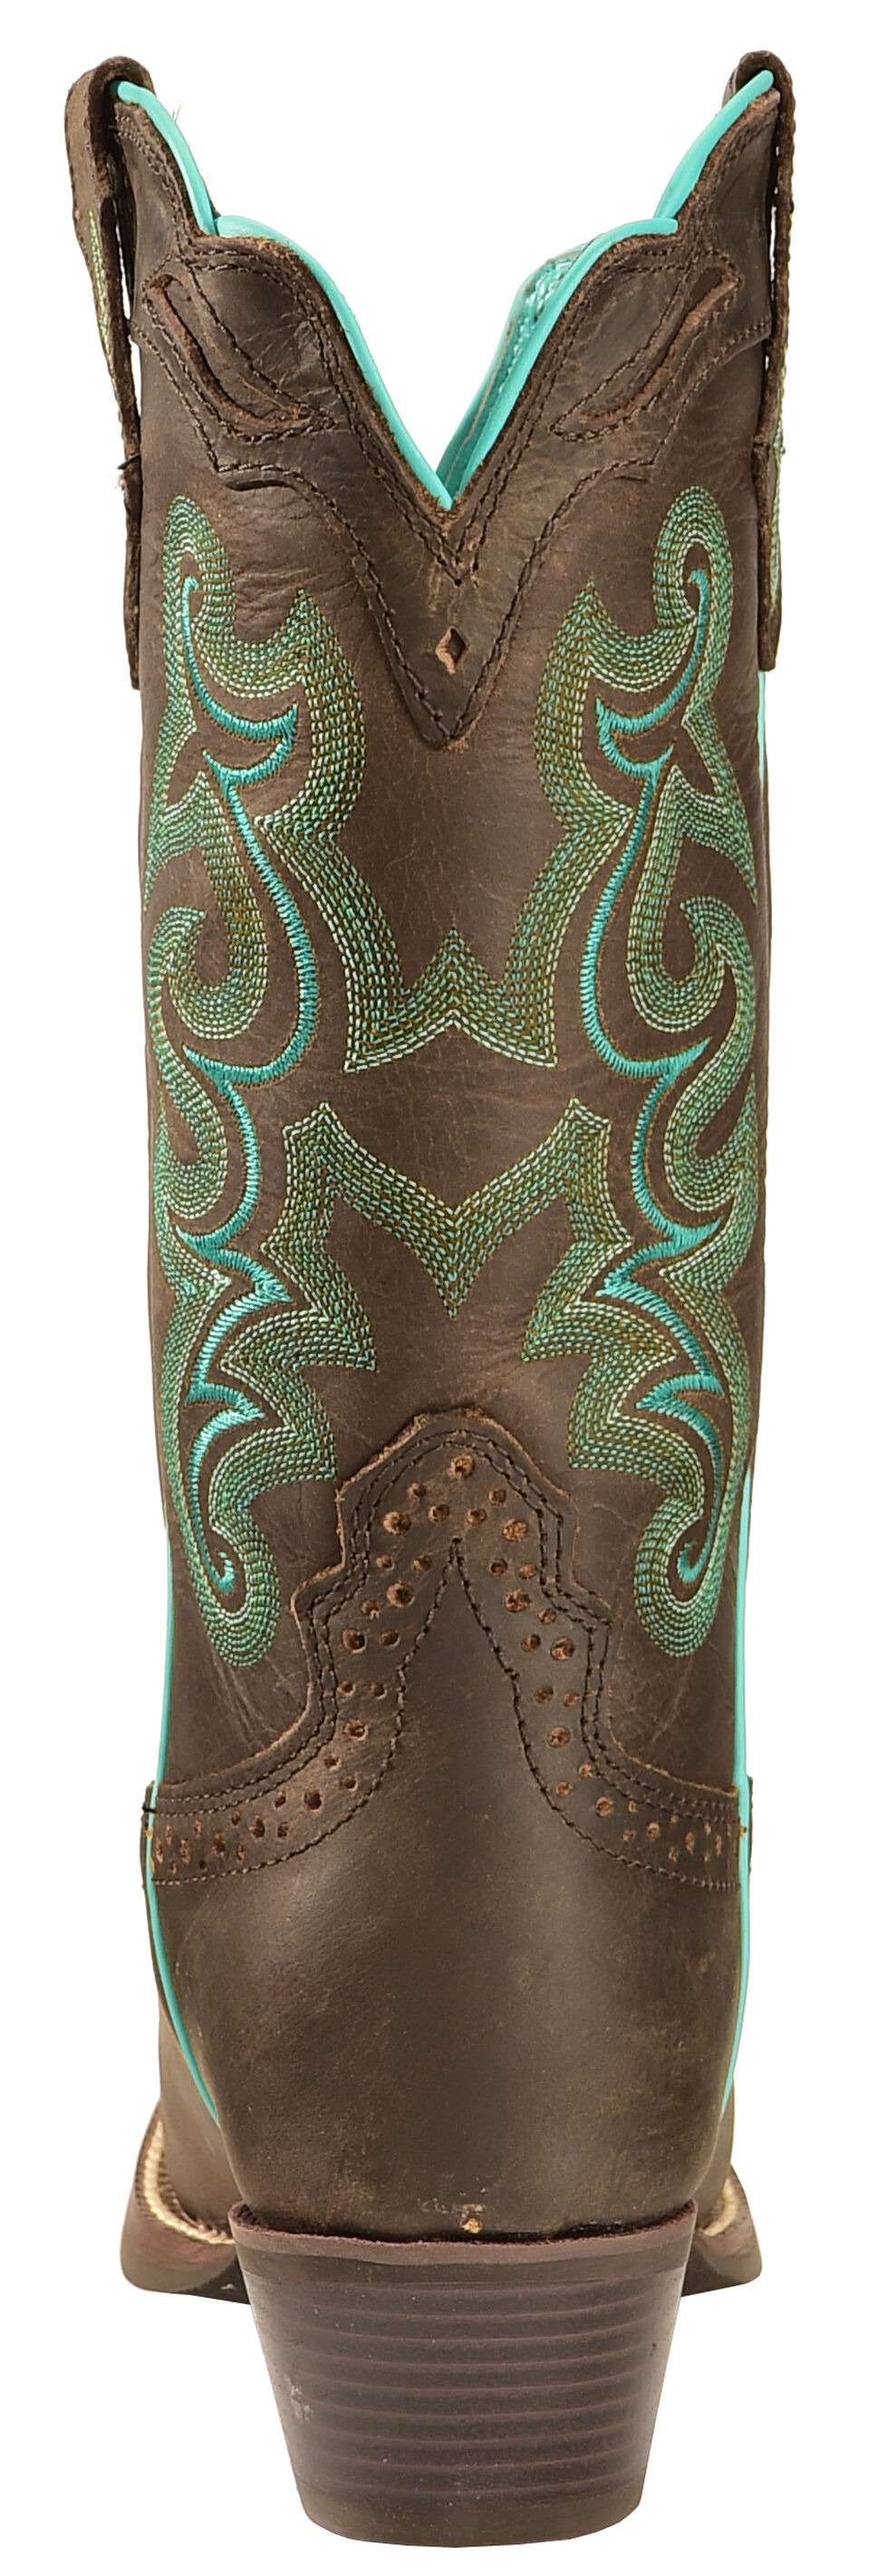 Justin Women's Sevana Chocolate Cowgirl Boots - Square Toe, Chocolate, hi-res